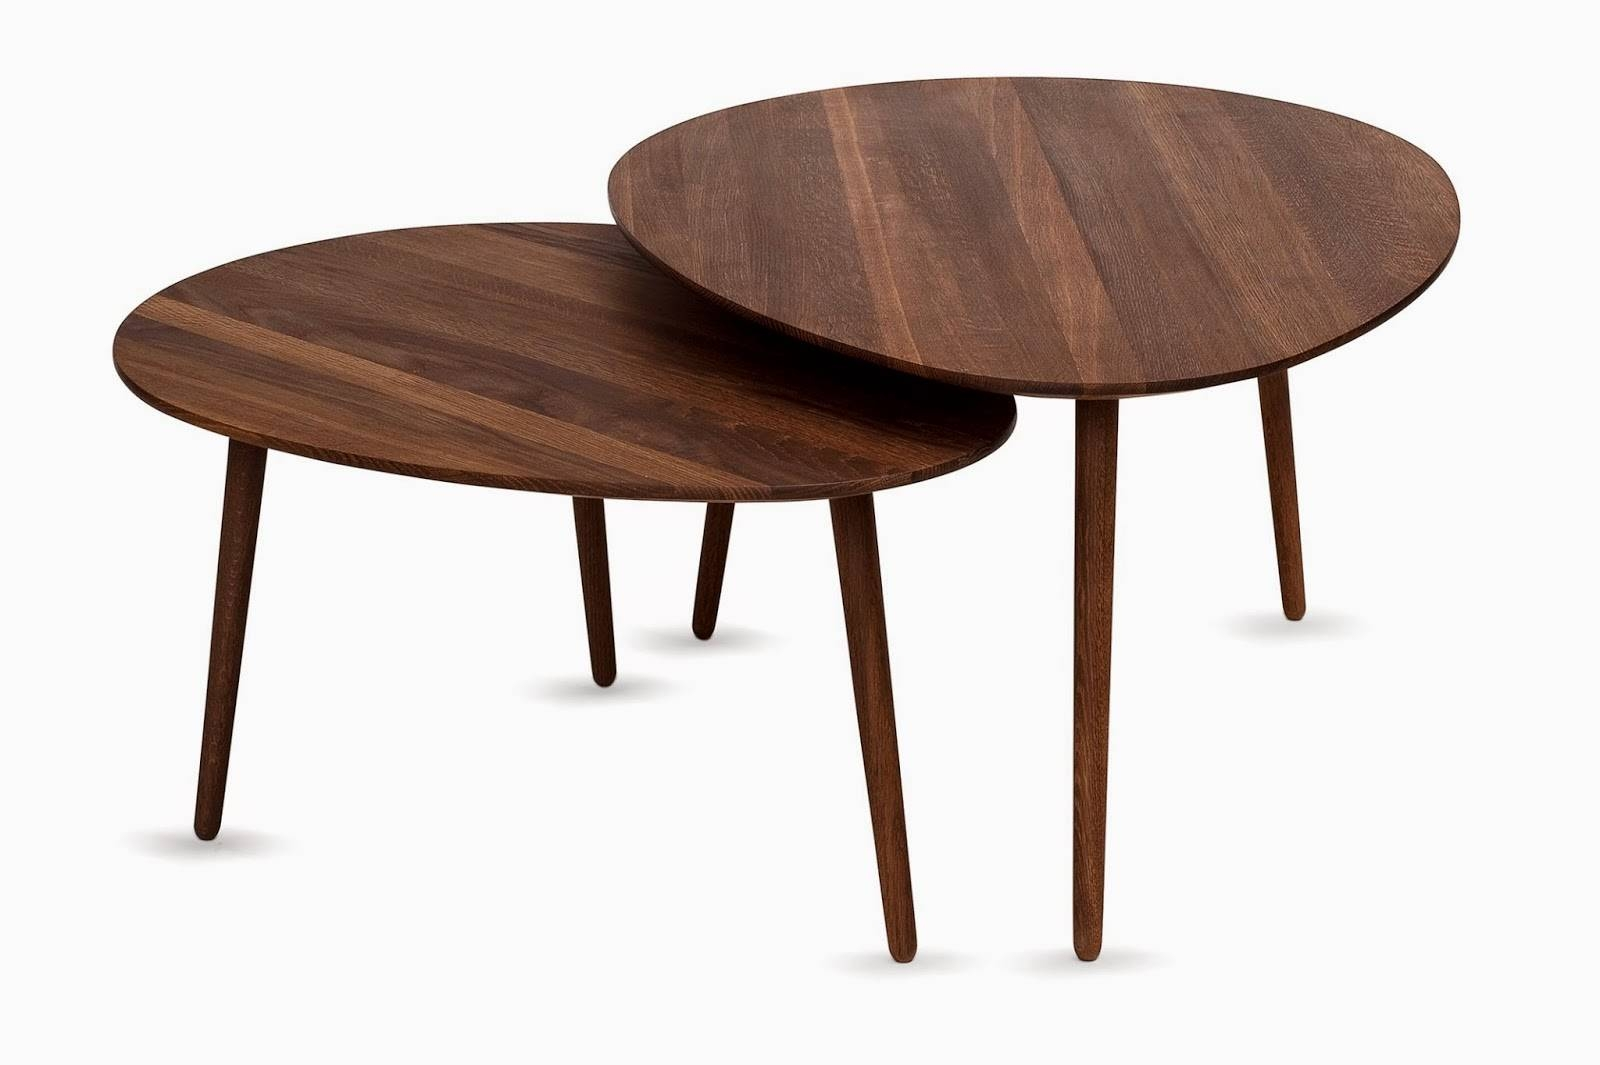 Furniture: Creative Minimalist Small Oval Coffee Table For Living with Oval Wooden Coffee Tables (Image 18 of 30)